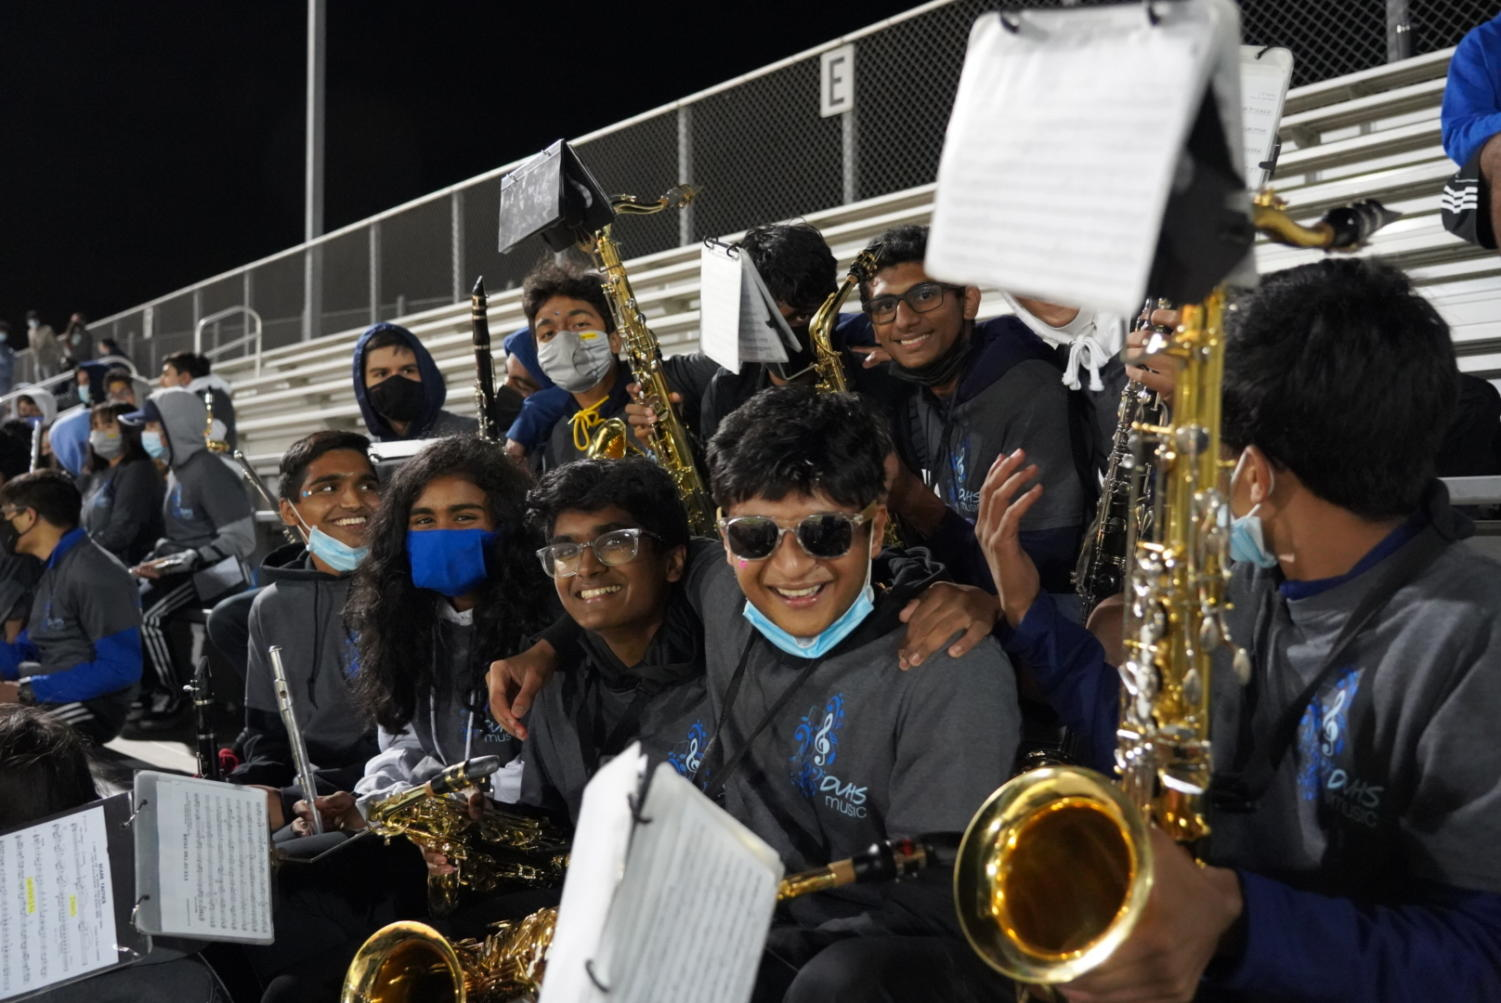 DVHS+band+is+back+together+again